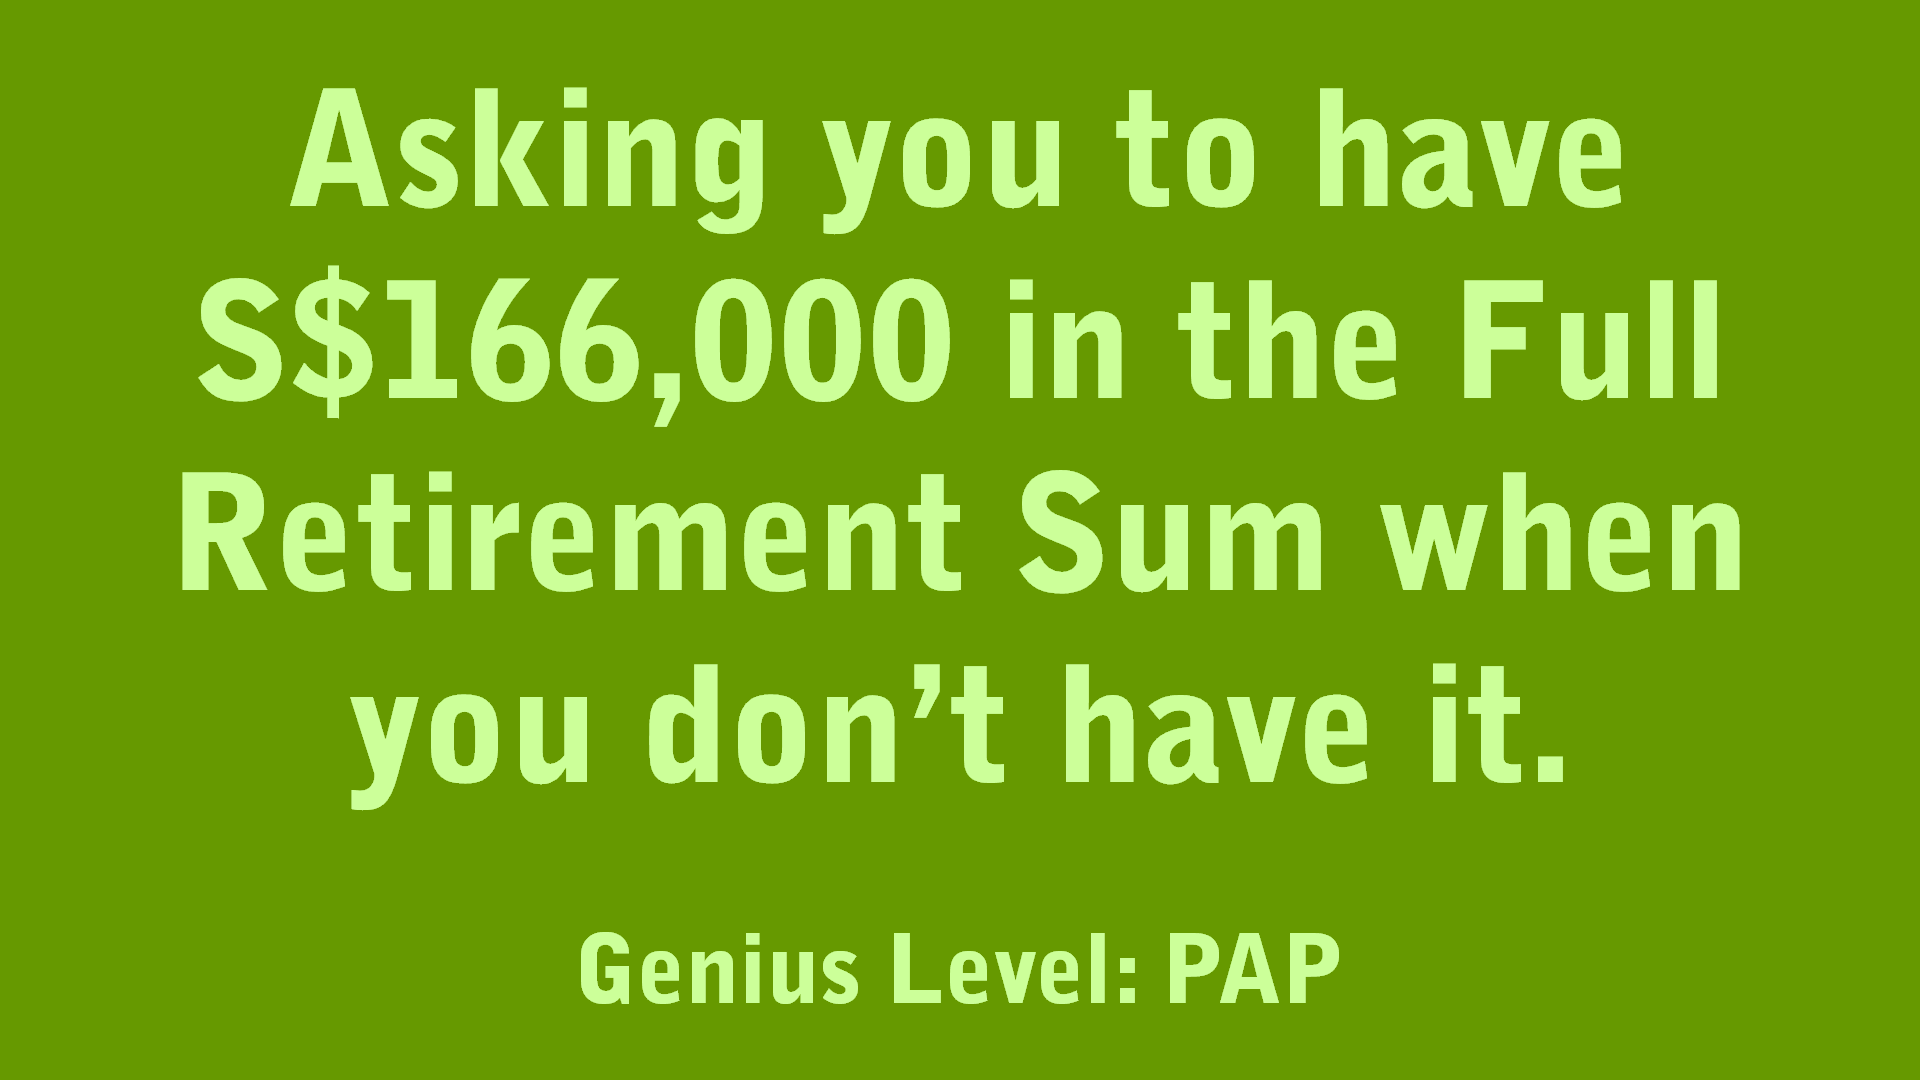 Asking you to have S$166,000 Full Retirement Sum.png